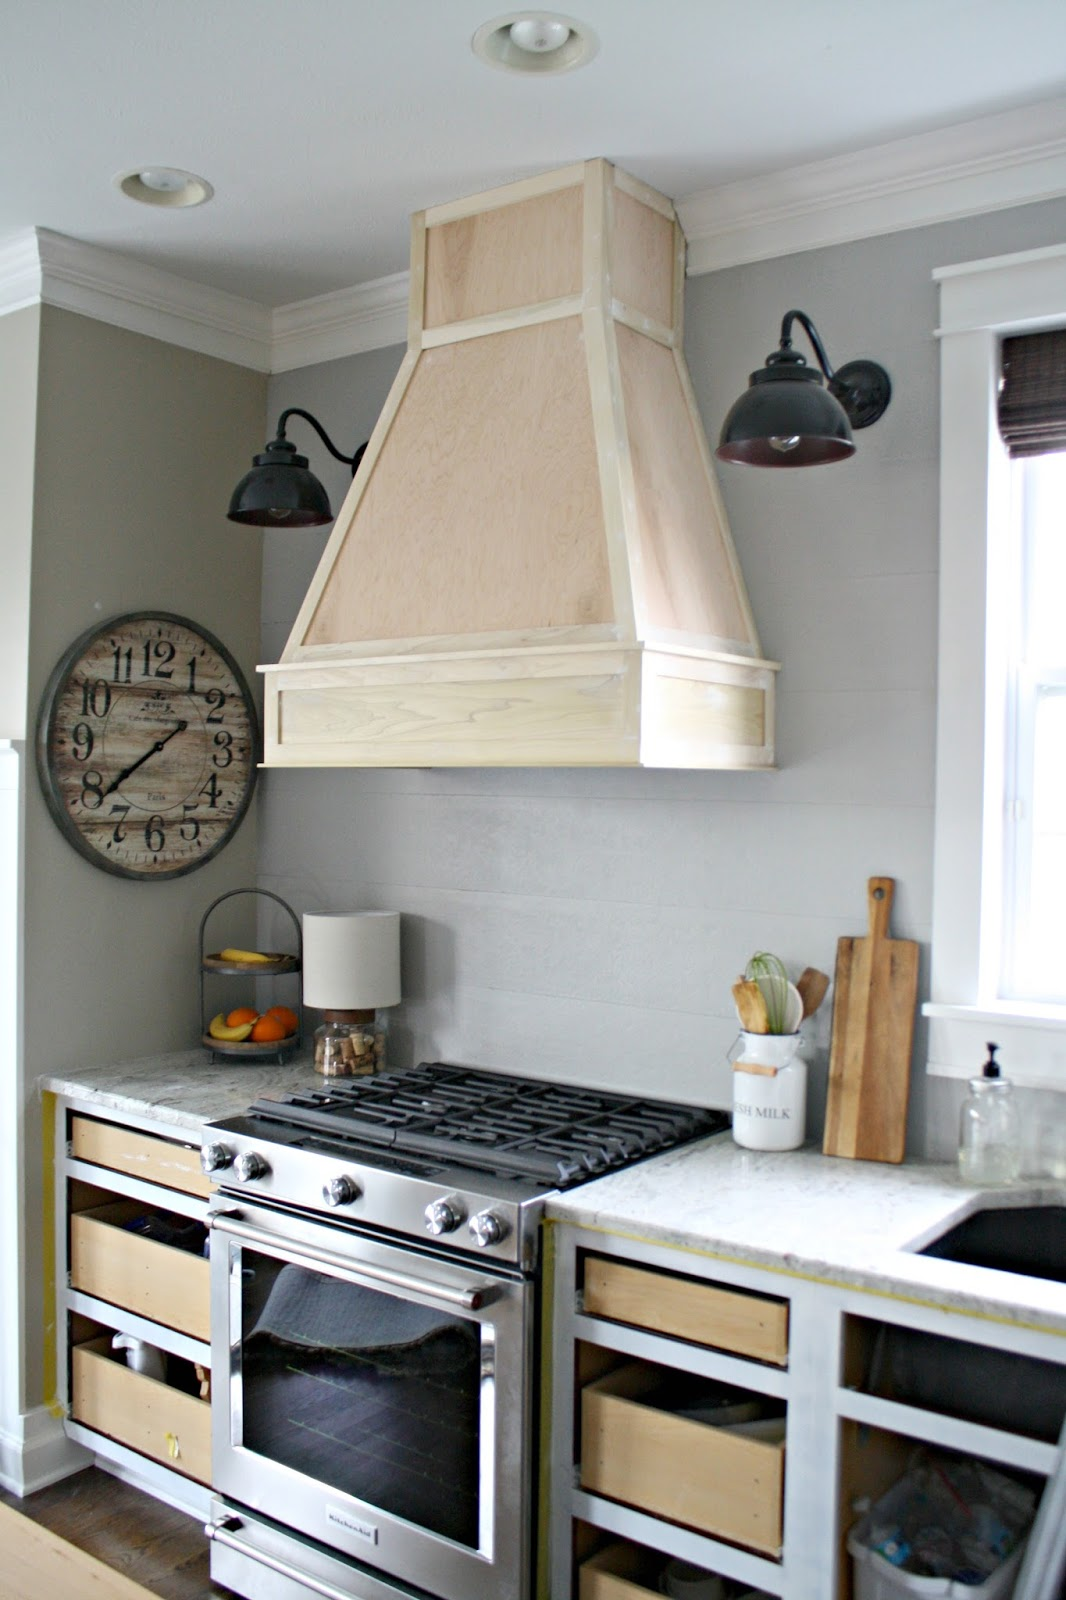 Kitchen Hood Vent On Kitchen A Diyish Wood Vent Hood From Thrifty Decor Chick